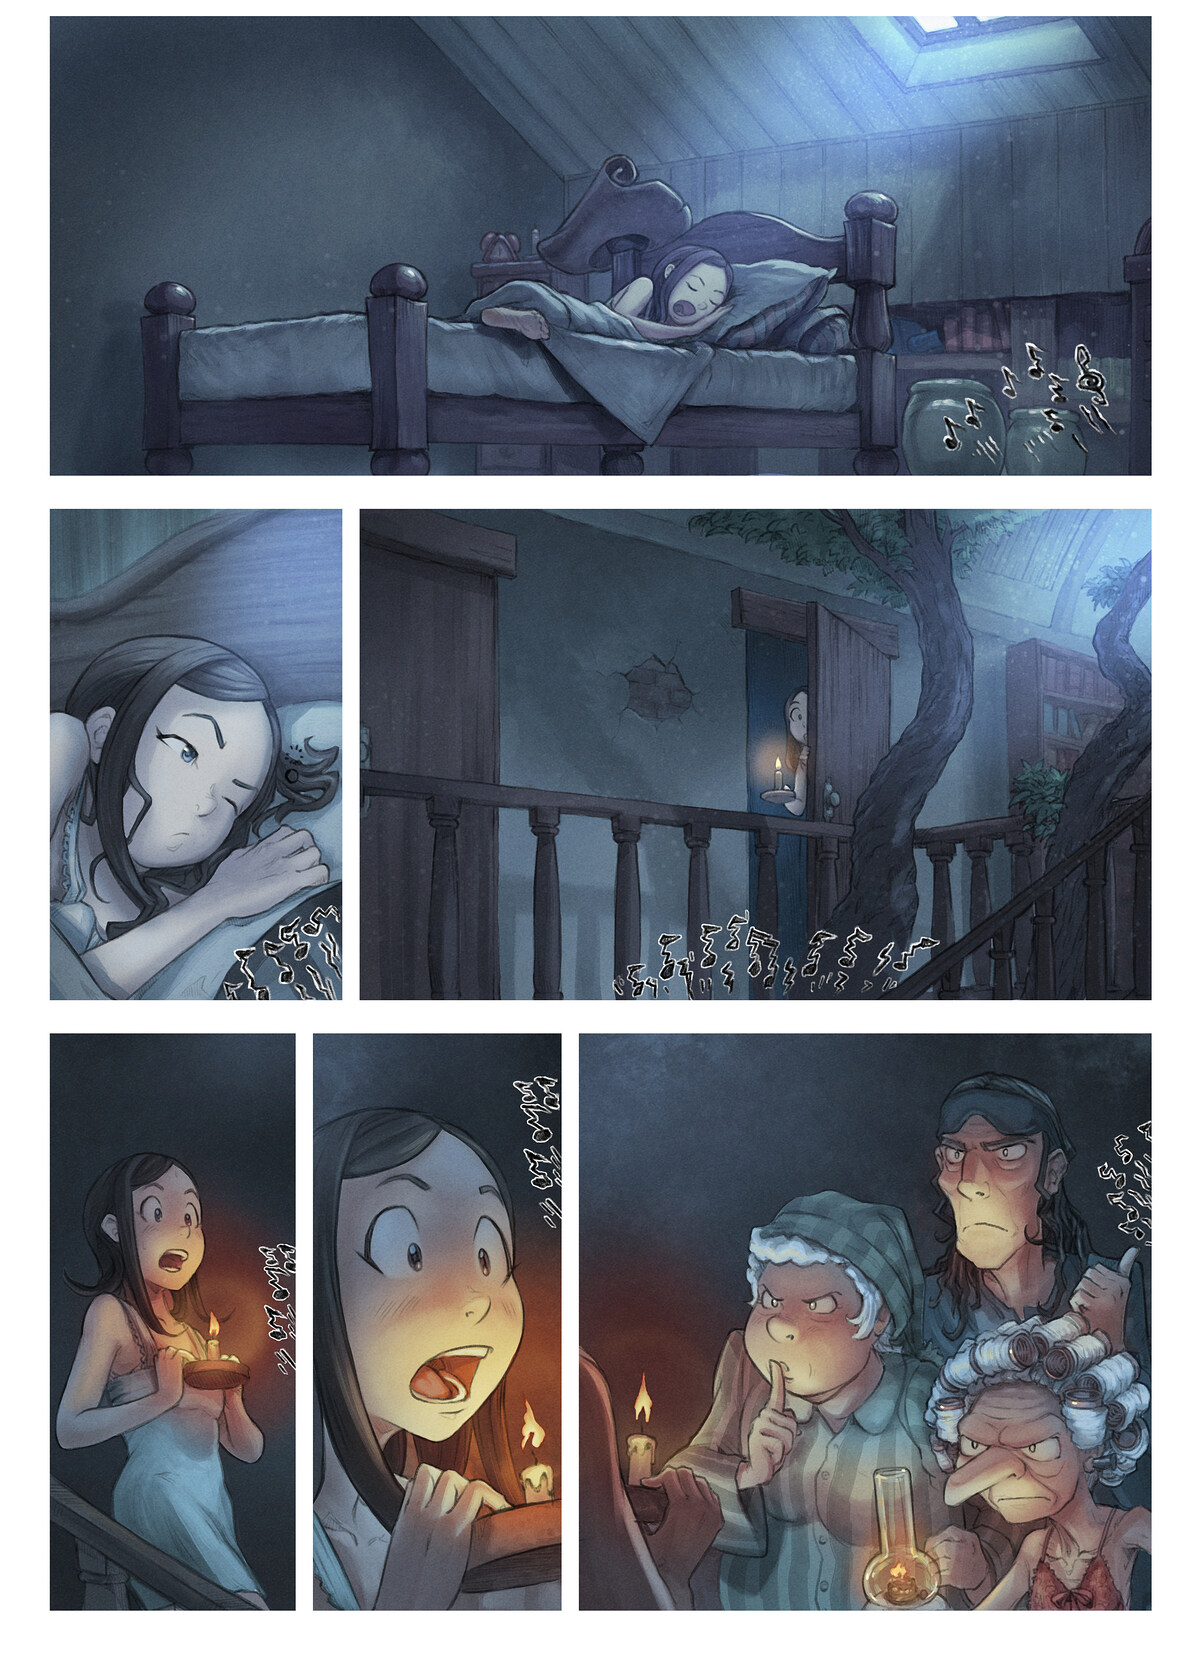 A webcomic page of Pepper&Carrot, 漫画全集 30 [cn], 页面 5